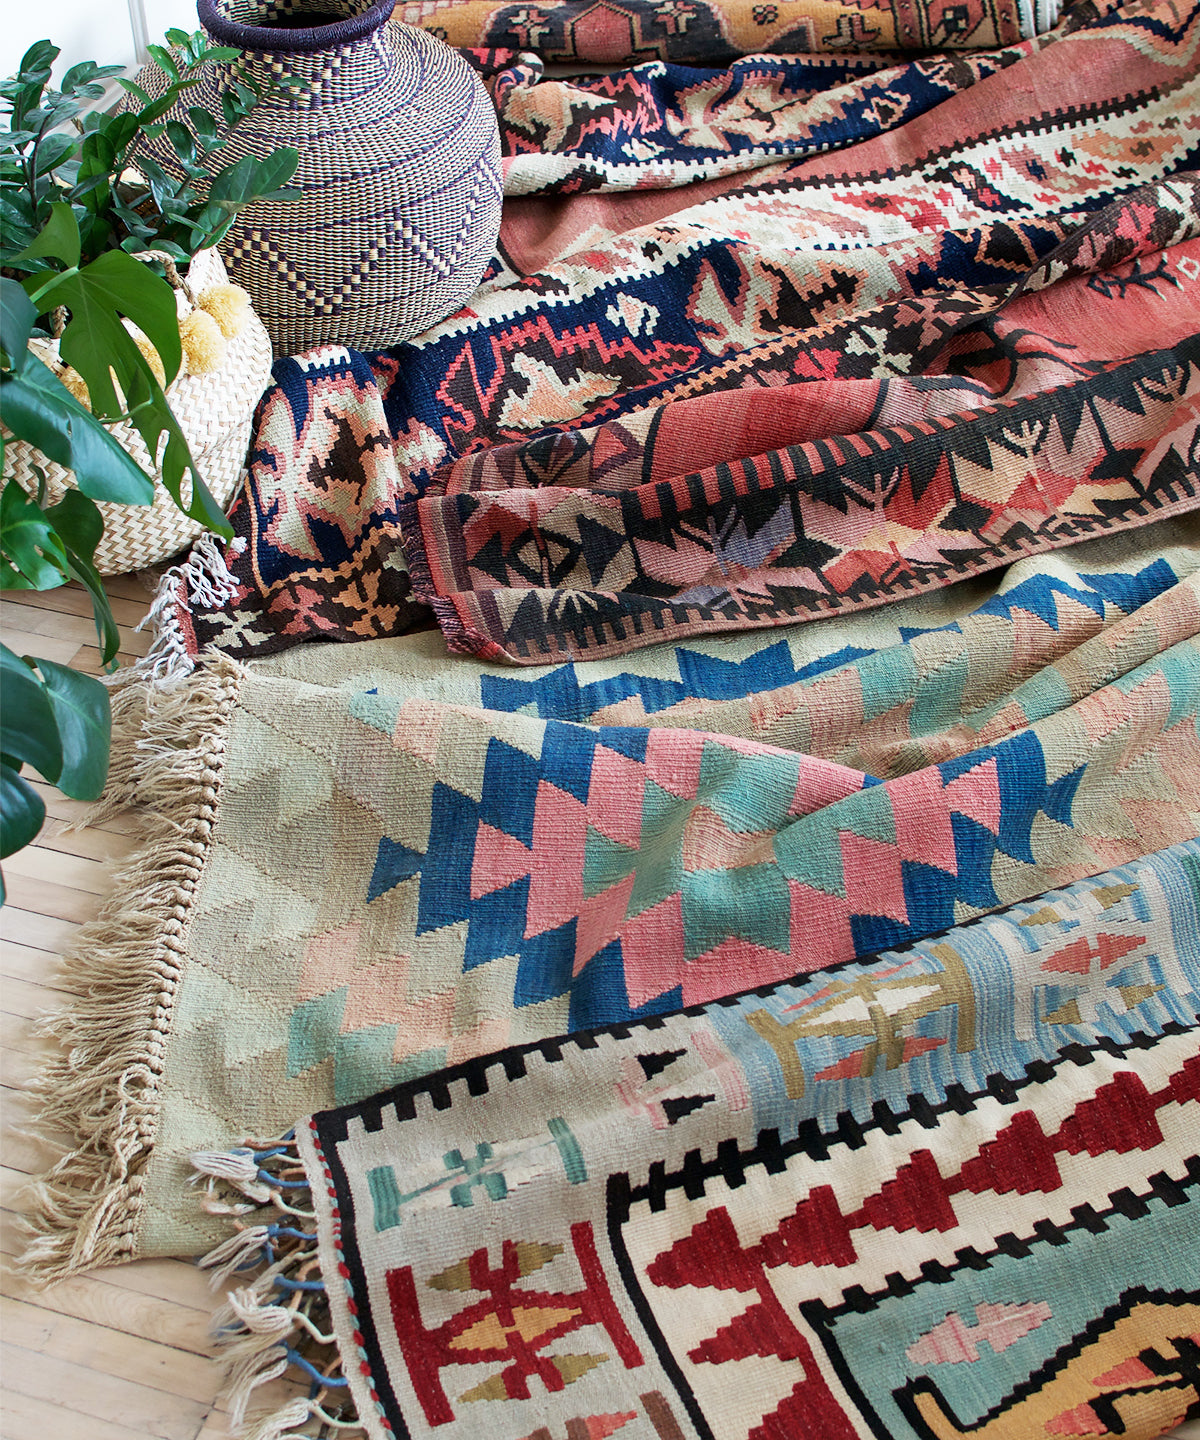 How to Make Your Favorite Rug Work in Your Space - sistergolden.com